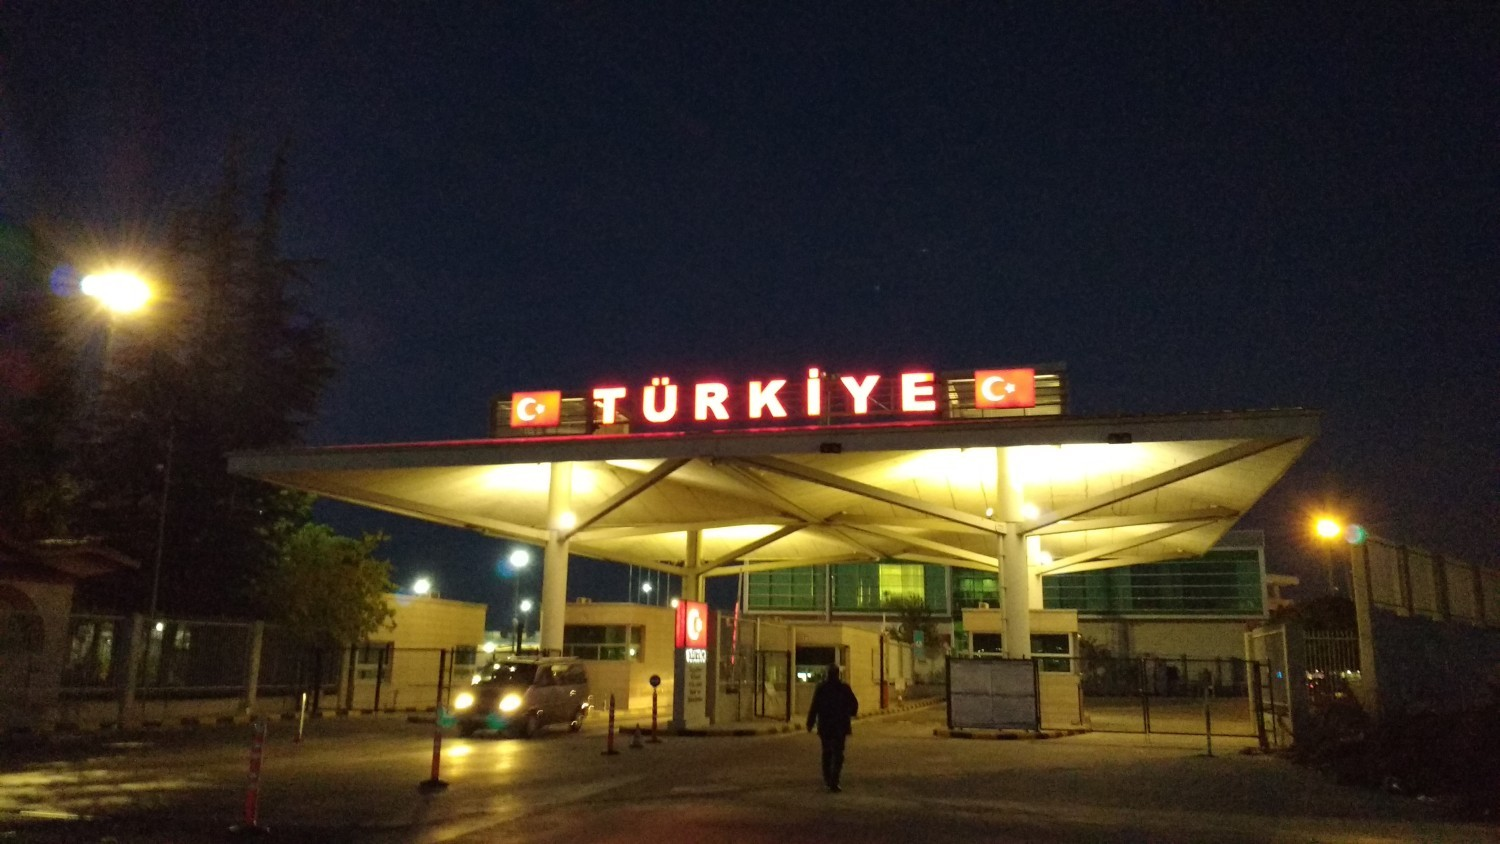 Finally entering Turkey